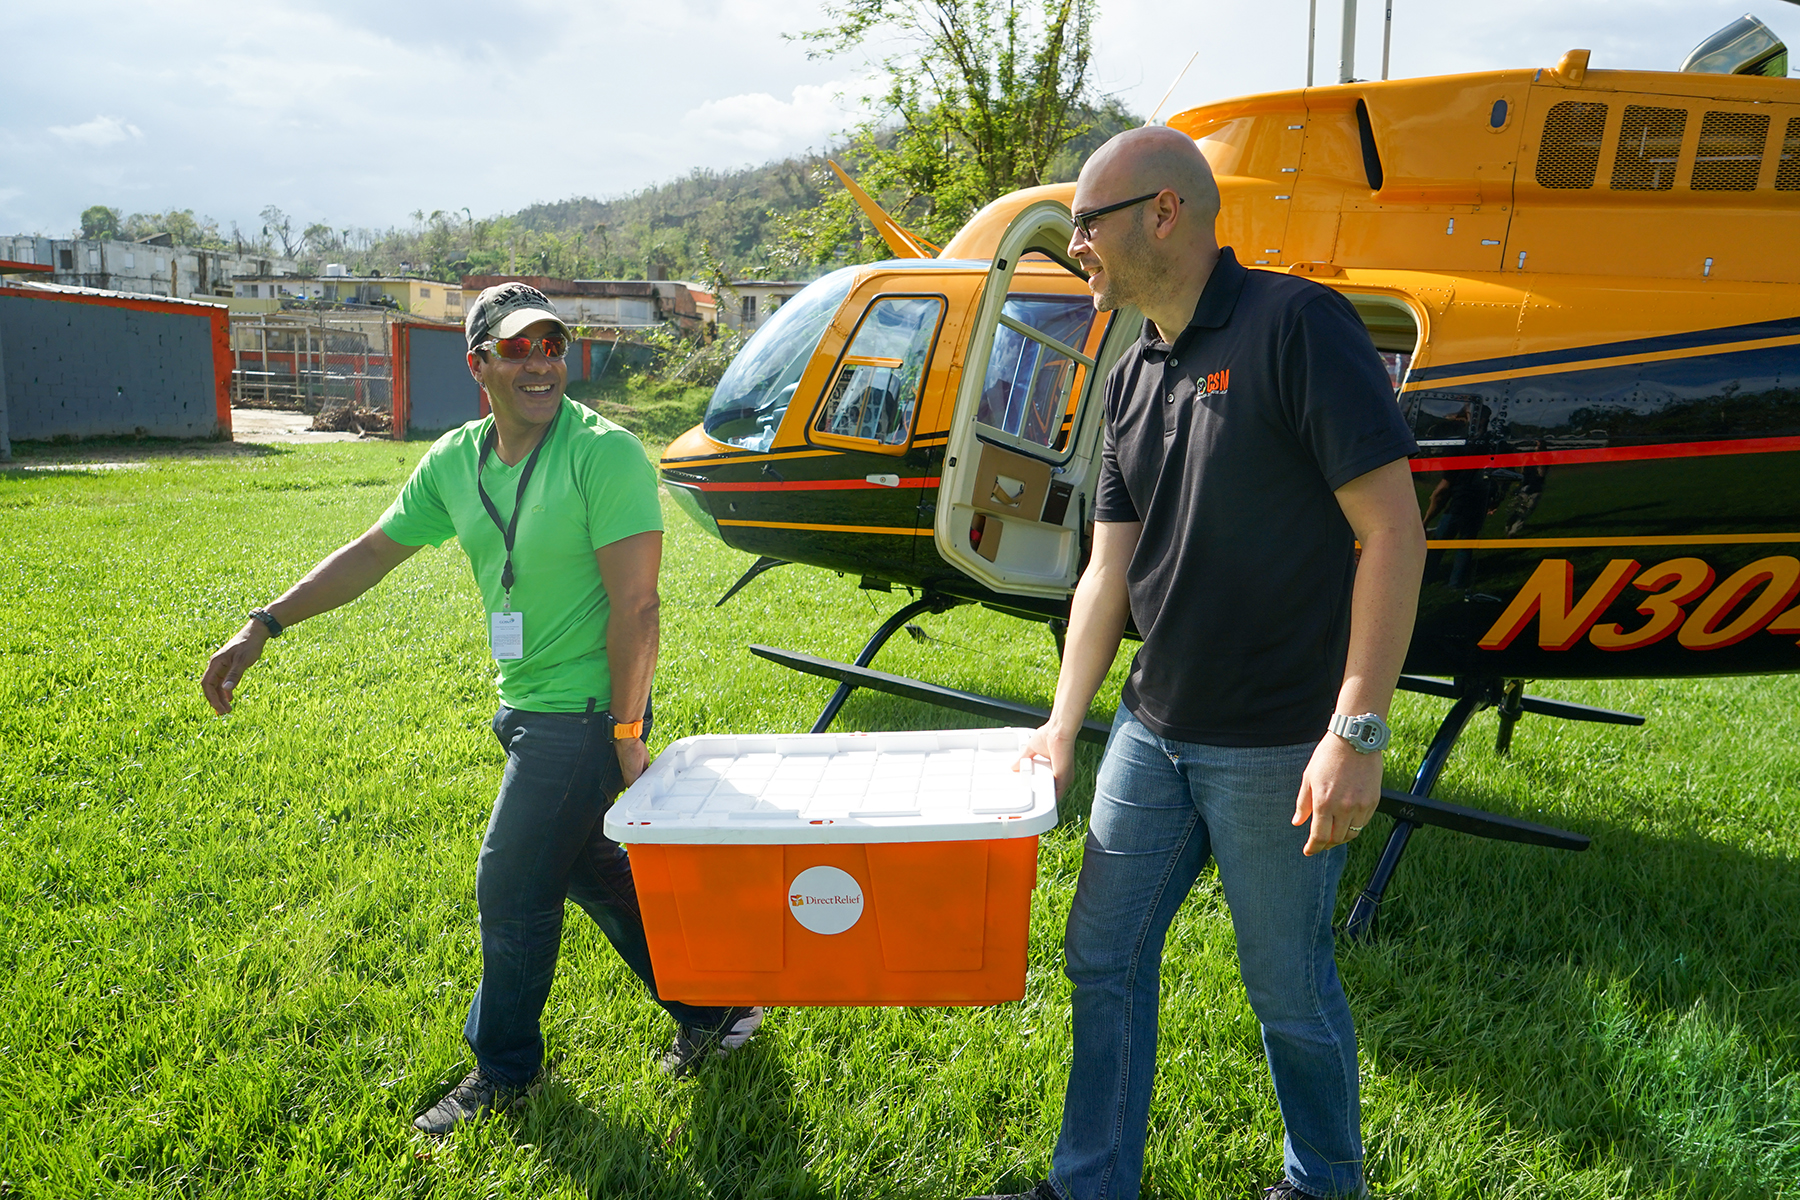 Daniel Ramos of the Puerto Rico Primary Care Association and Alexis Romero of the Corporacion de Servicios Medicos, a clinic in Utuado, unload Direct Relief medicines from a helicopter provided by Samaritan's Purse. (Lara Cooper/Direct Relief)